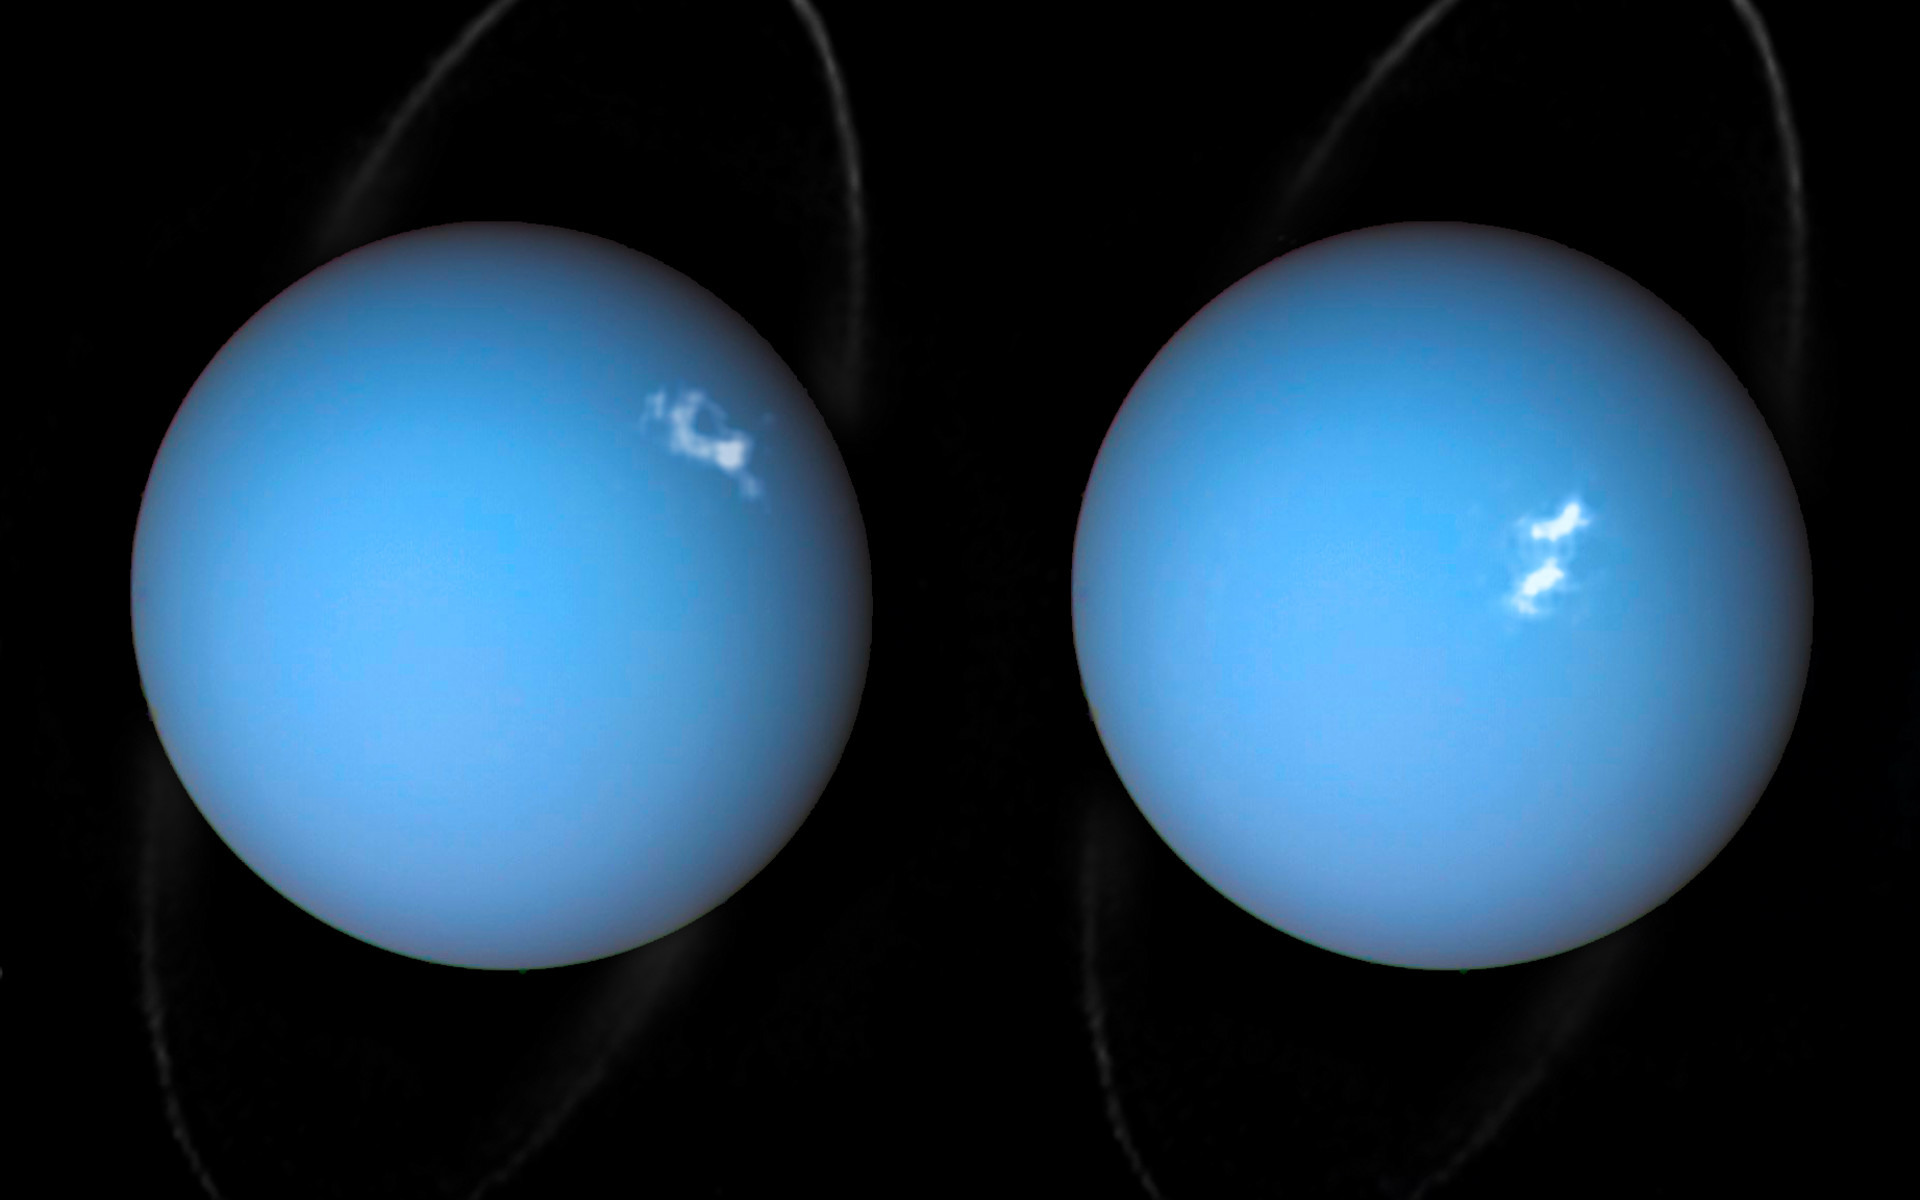 uranus hubble images - HD 1920×1200